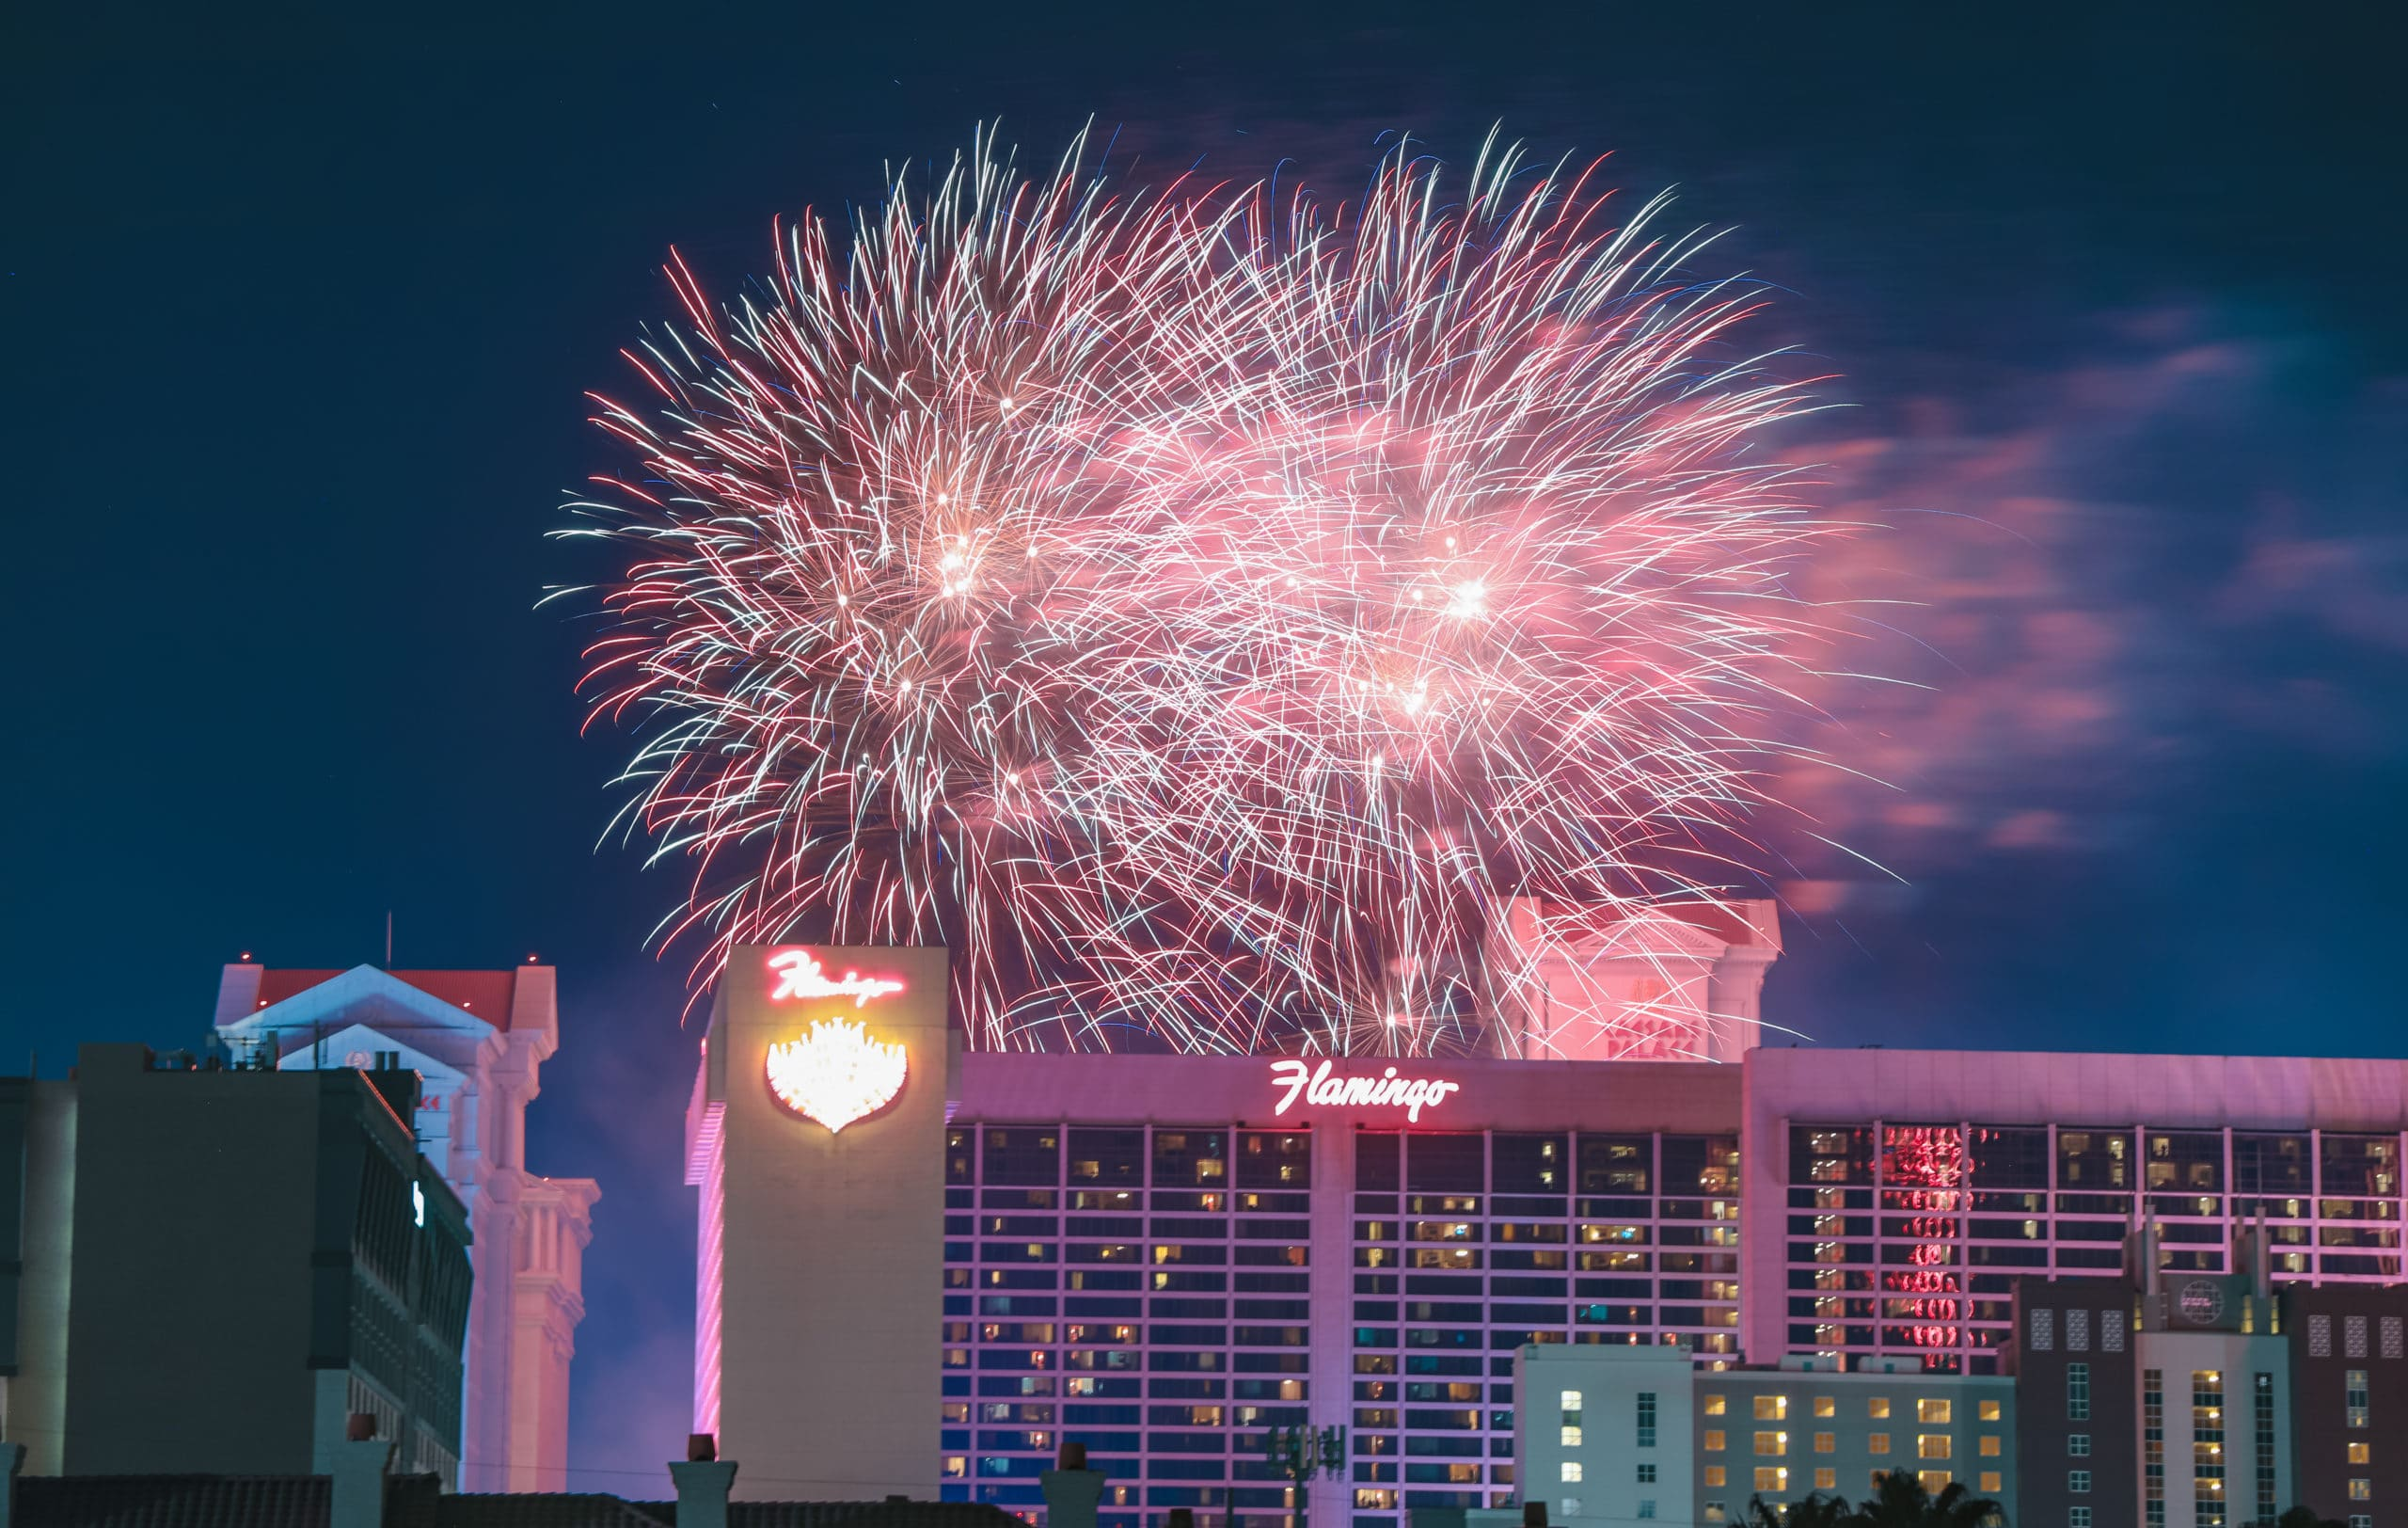 Fireworks of the Flamingo, Independence Day 2019